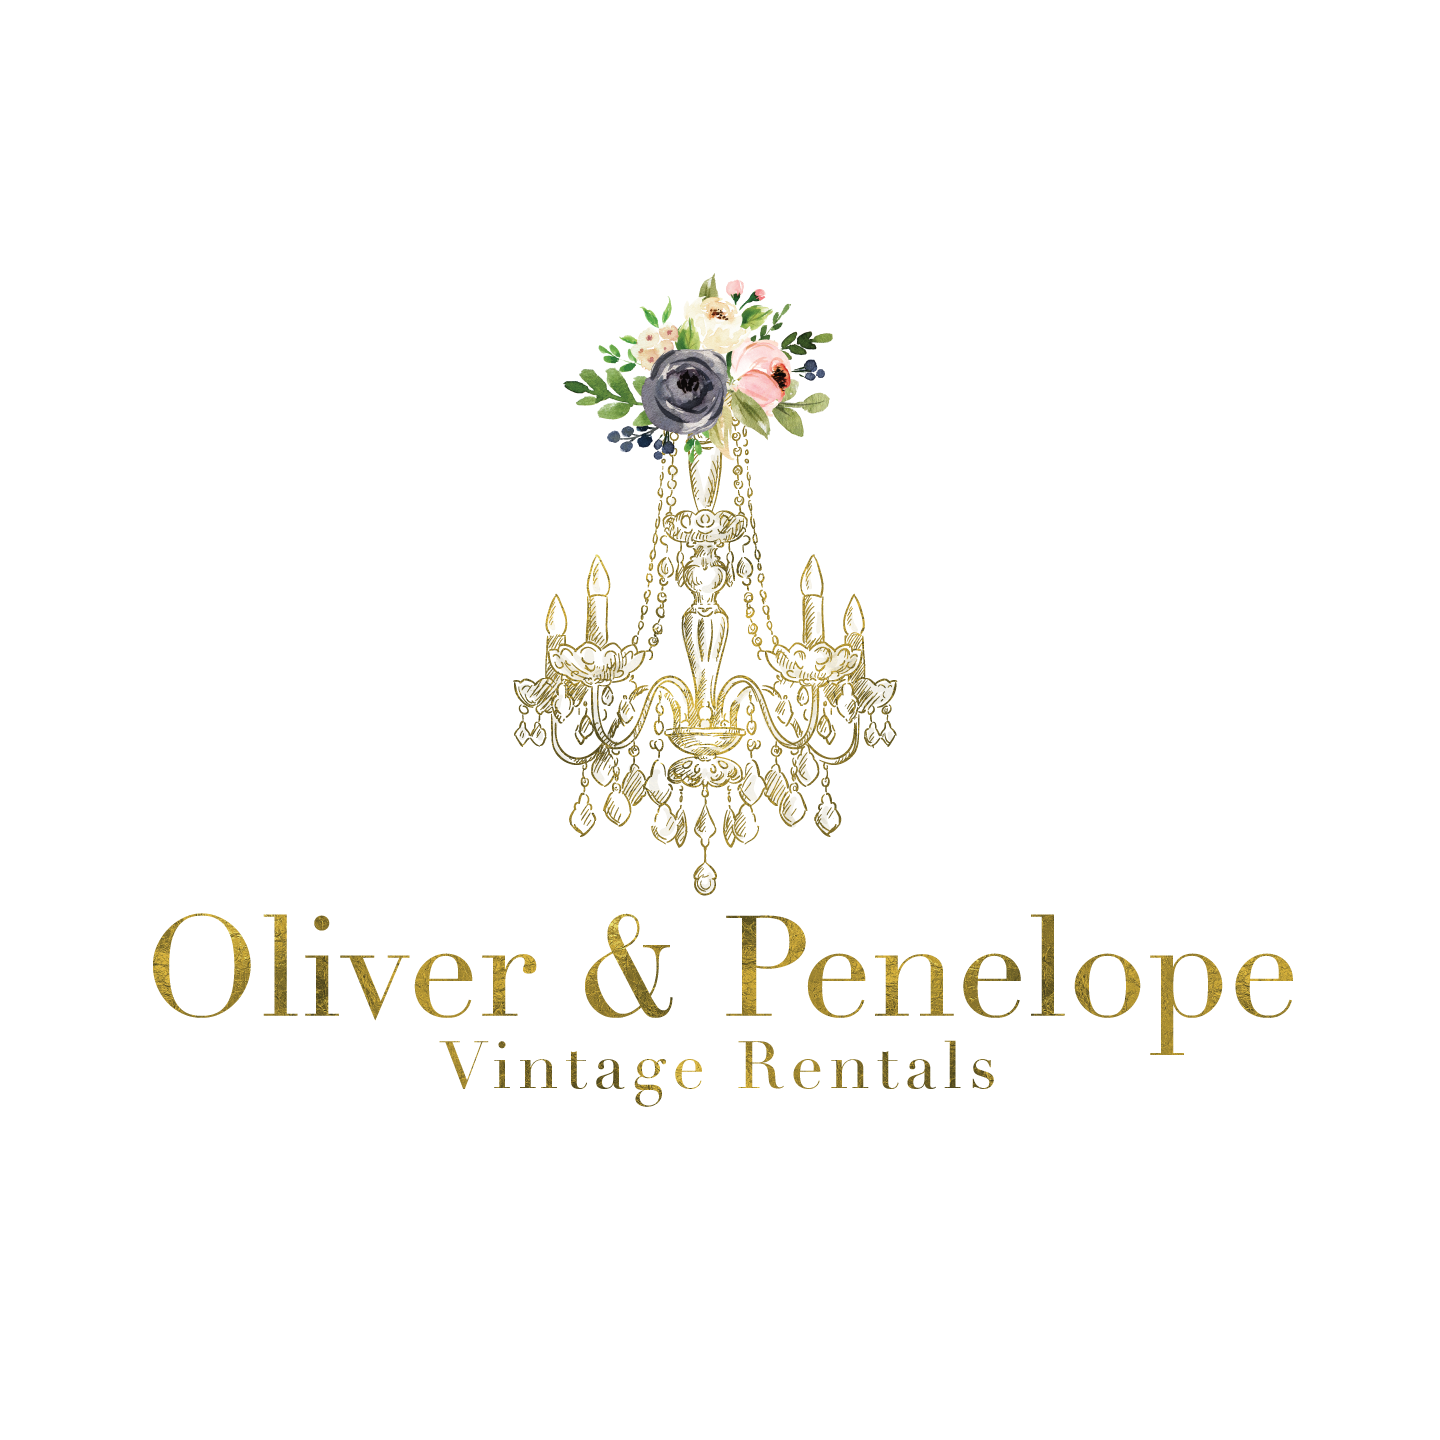 Oliver and Penelope Vintage Rentals - Houston Decor & Rentals